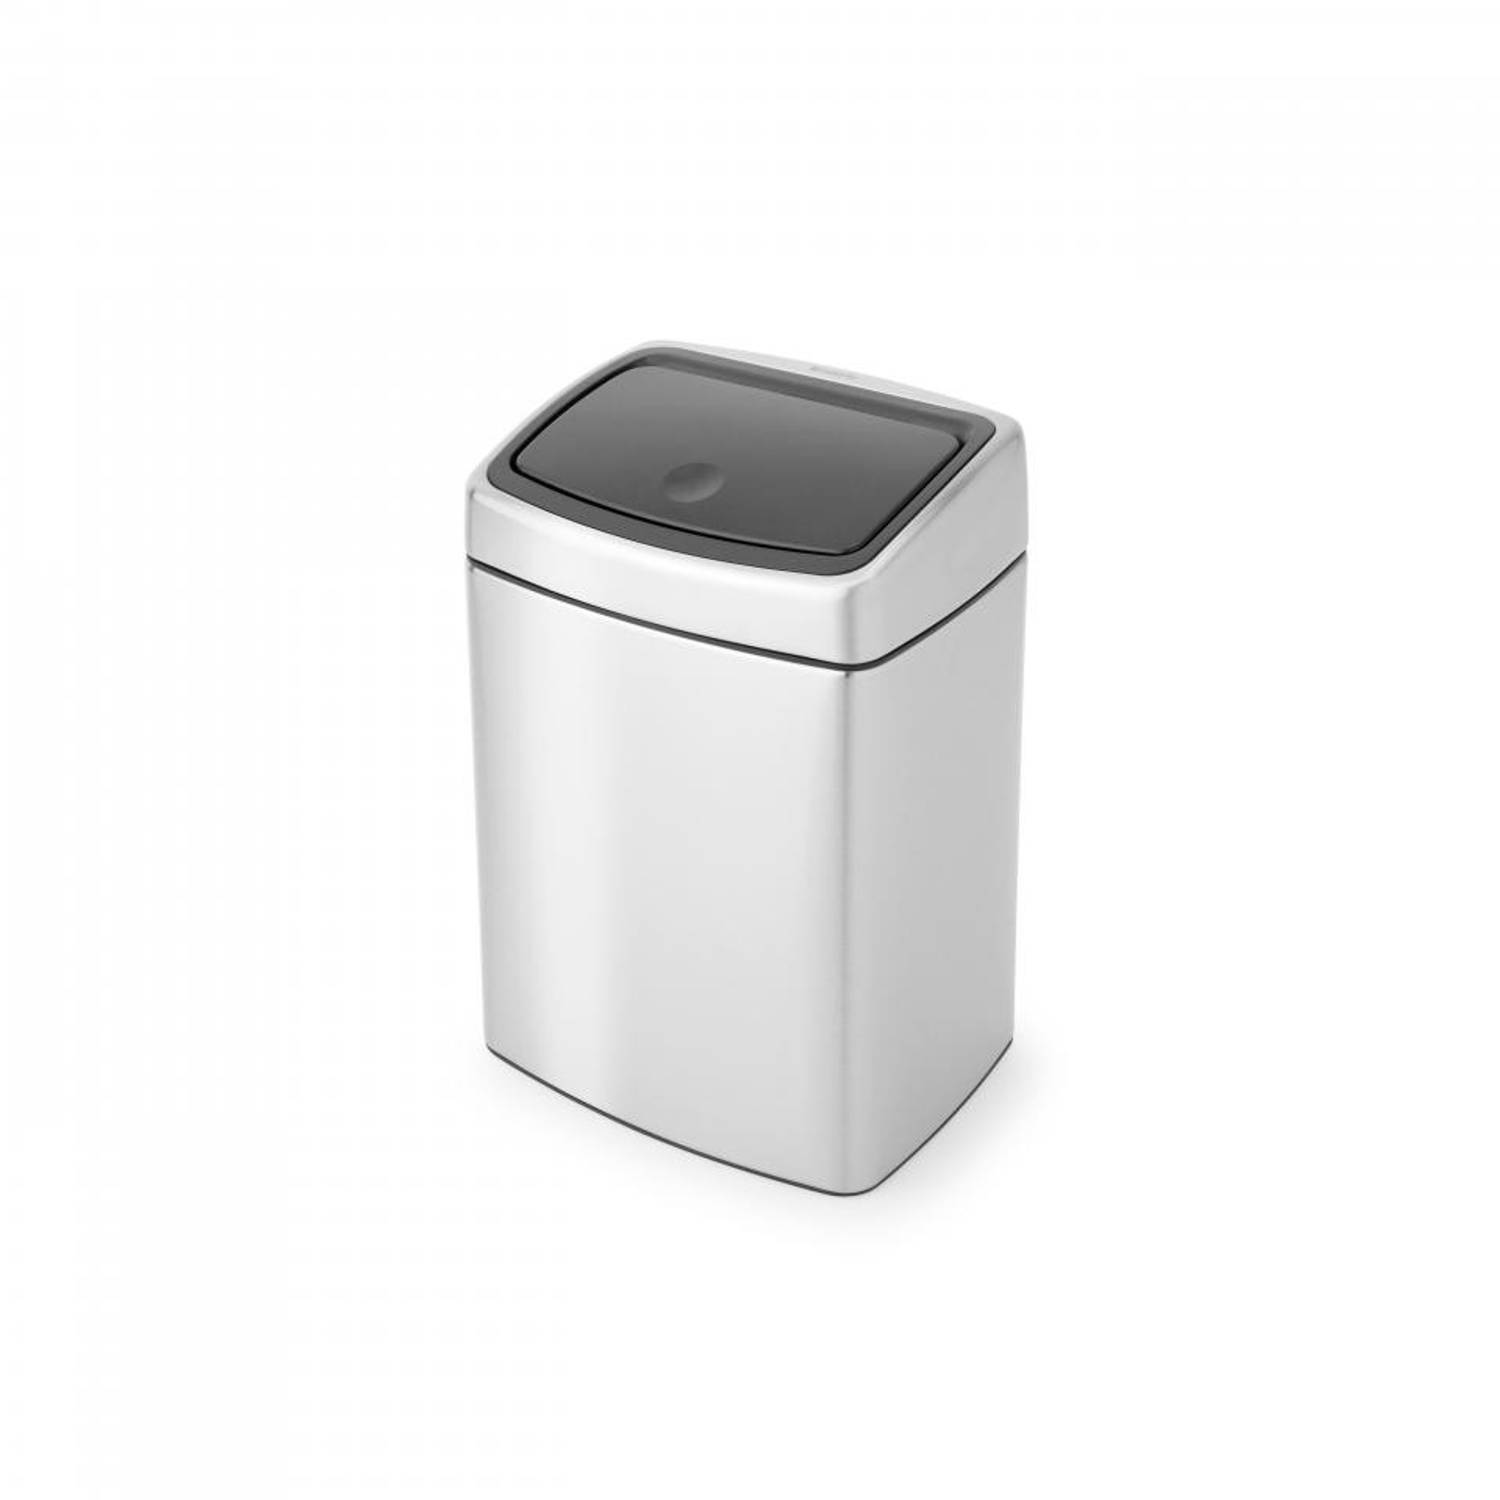 Brabantia Touch Bin 10 l - Matt Steel Fingerprint Proof